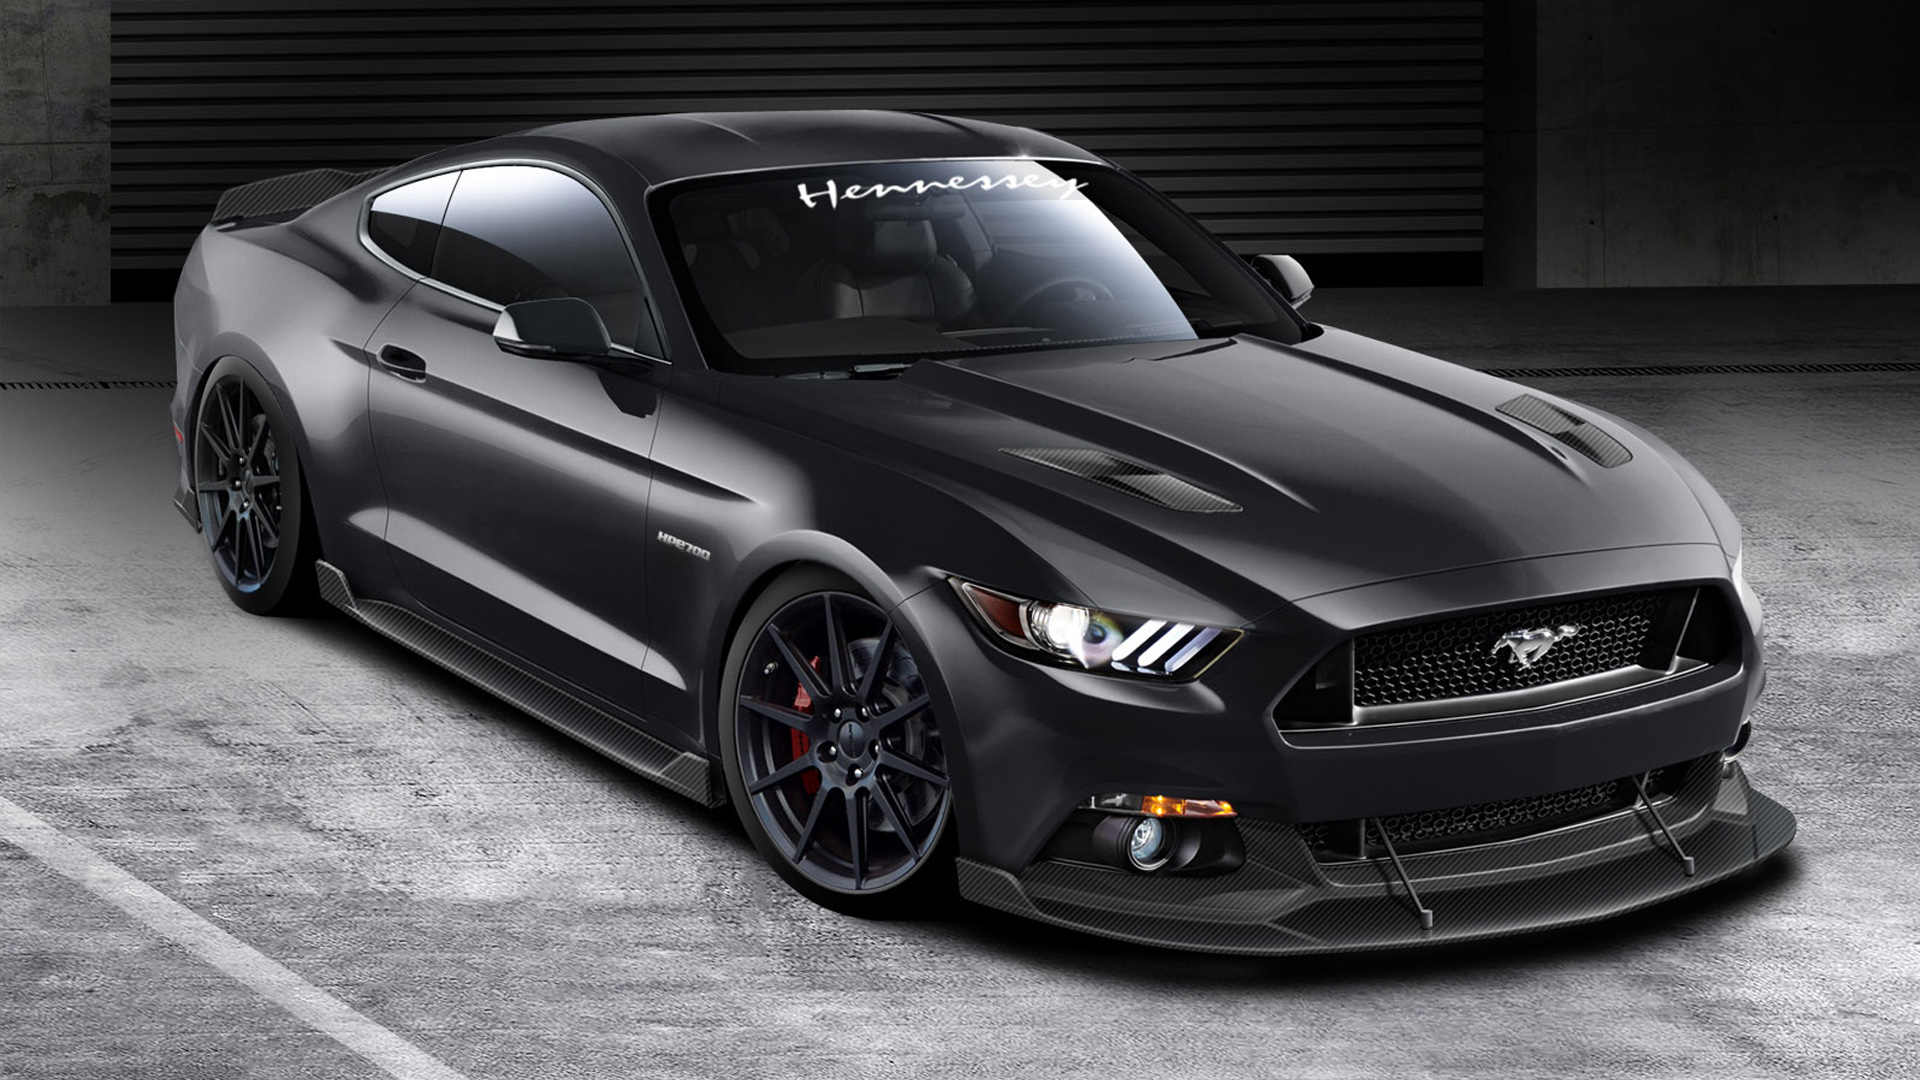 2015 hennessey ford mustang gt wallpaper hd car wallpapers. Black Bedroom Furniture Sets. Home Design Ideas